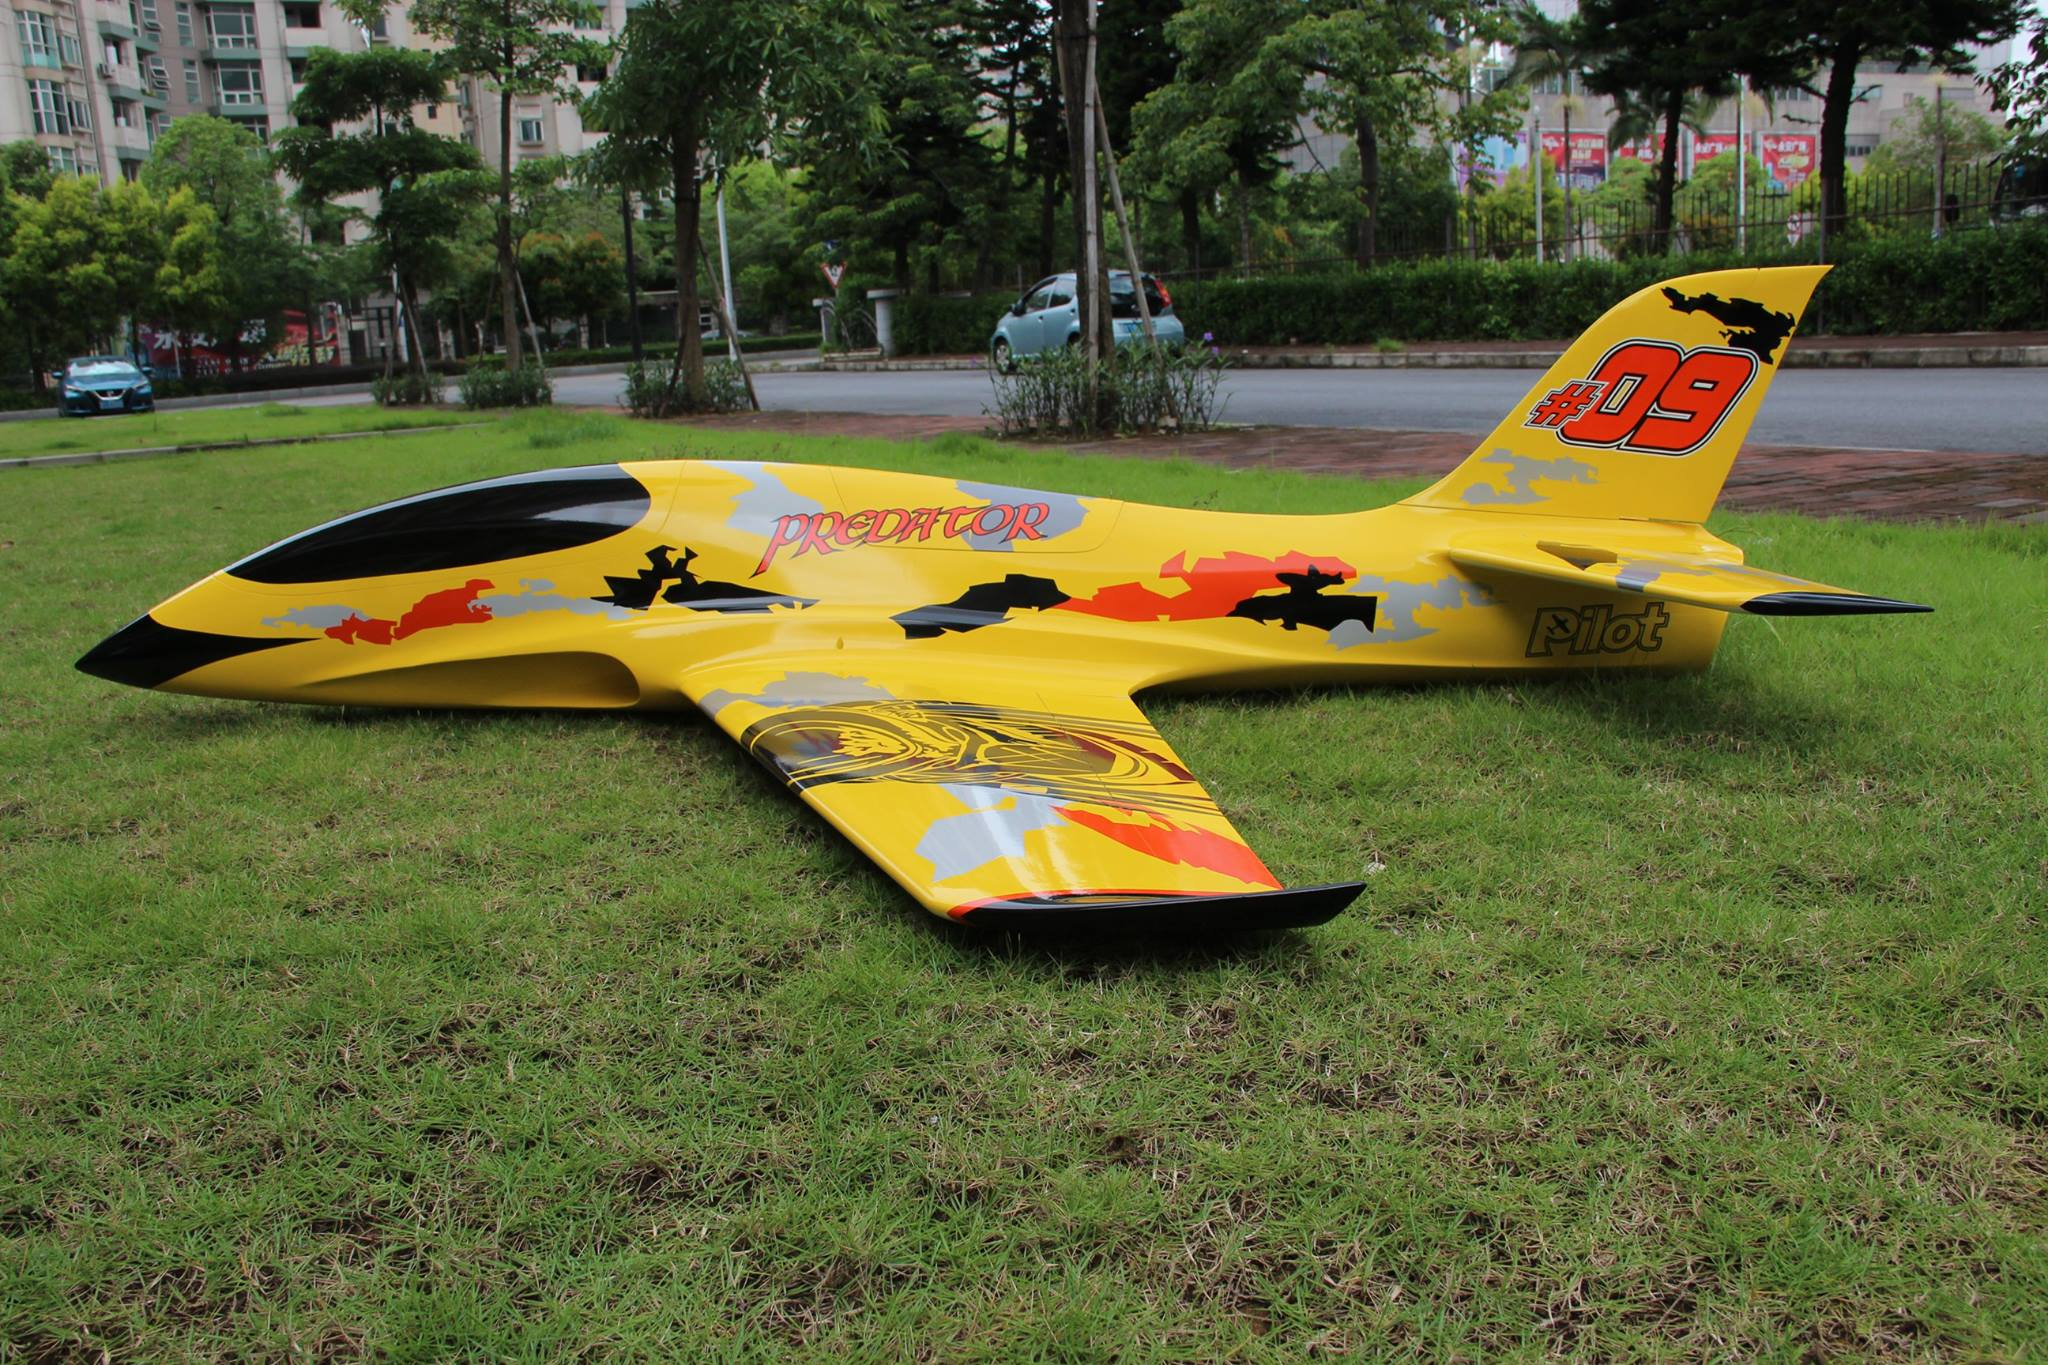 Pilot rc 2 2m Predator jet 04, retracts,air trap,tail pipe  -